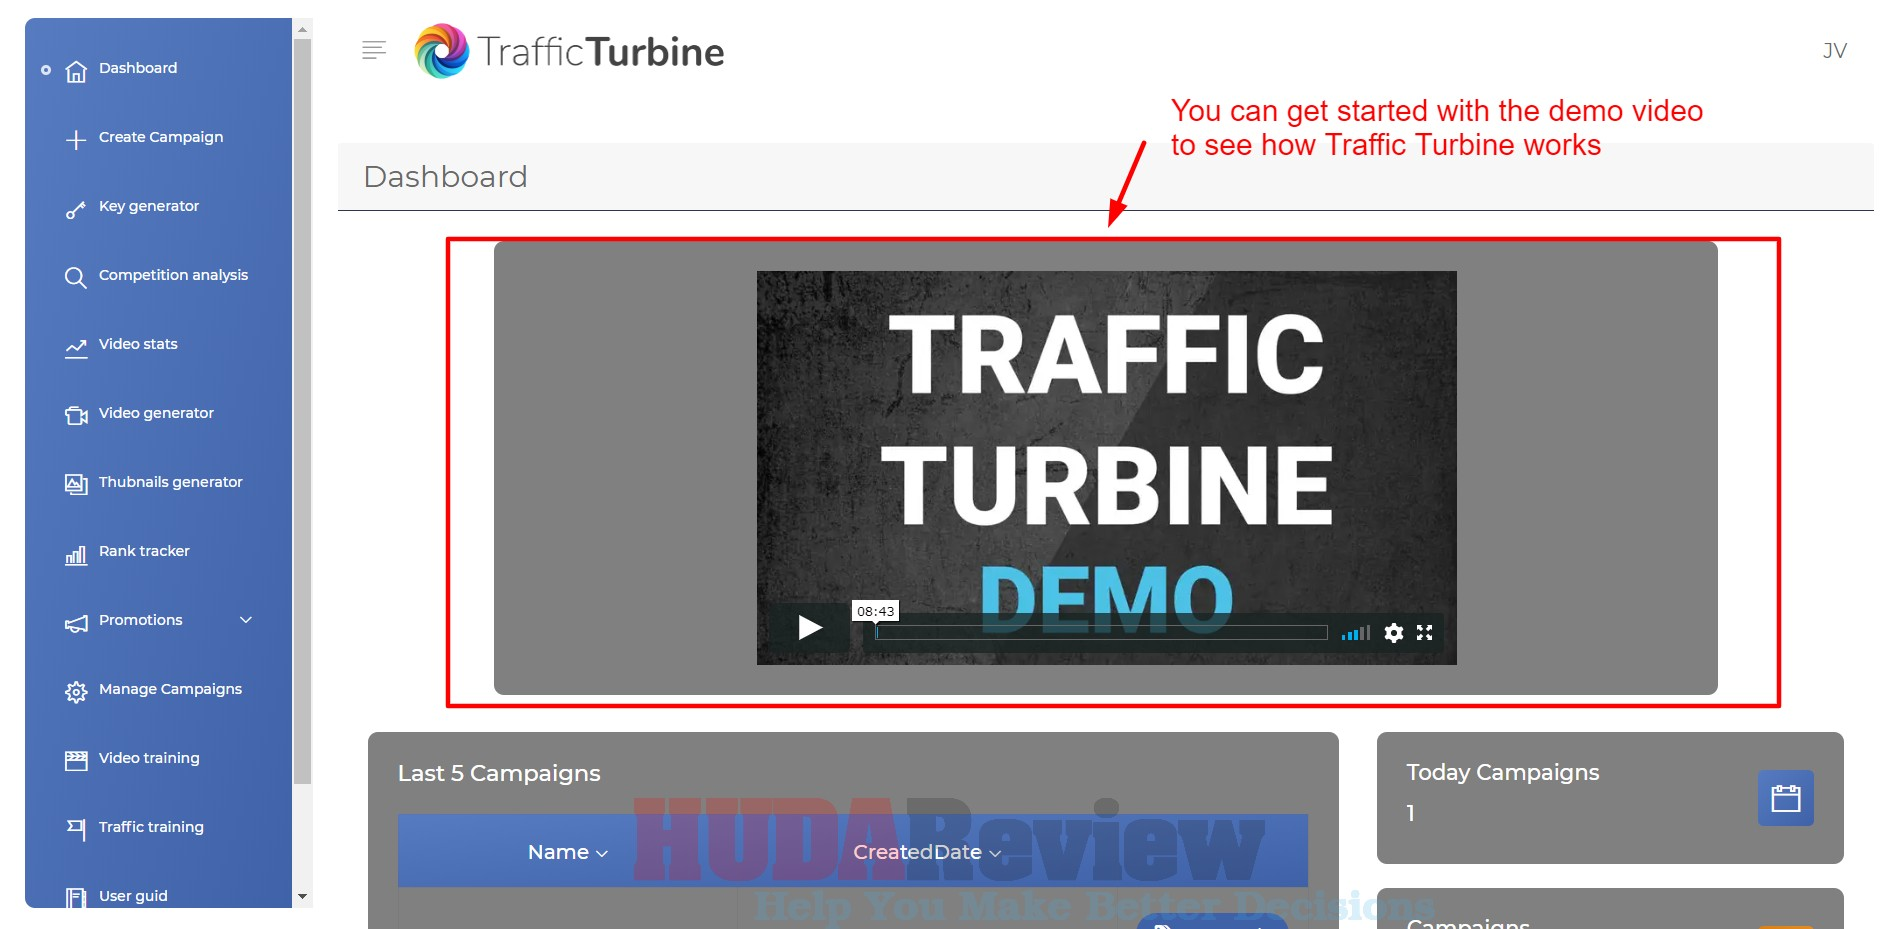 Traffic-Turbine-demo-1